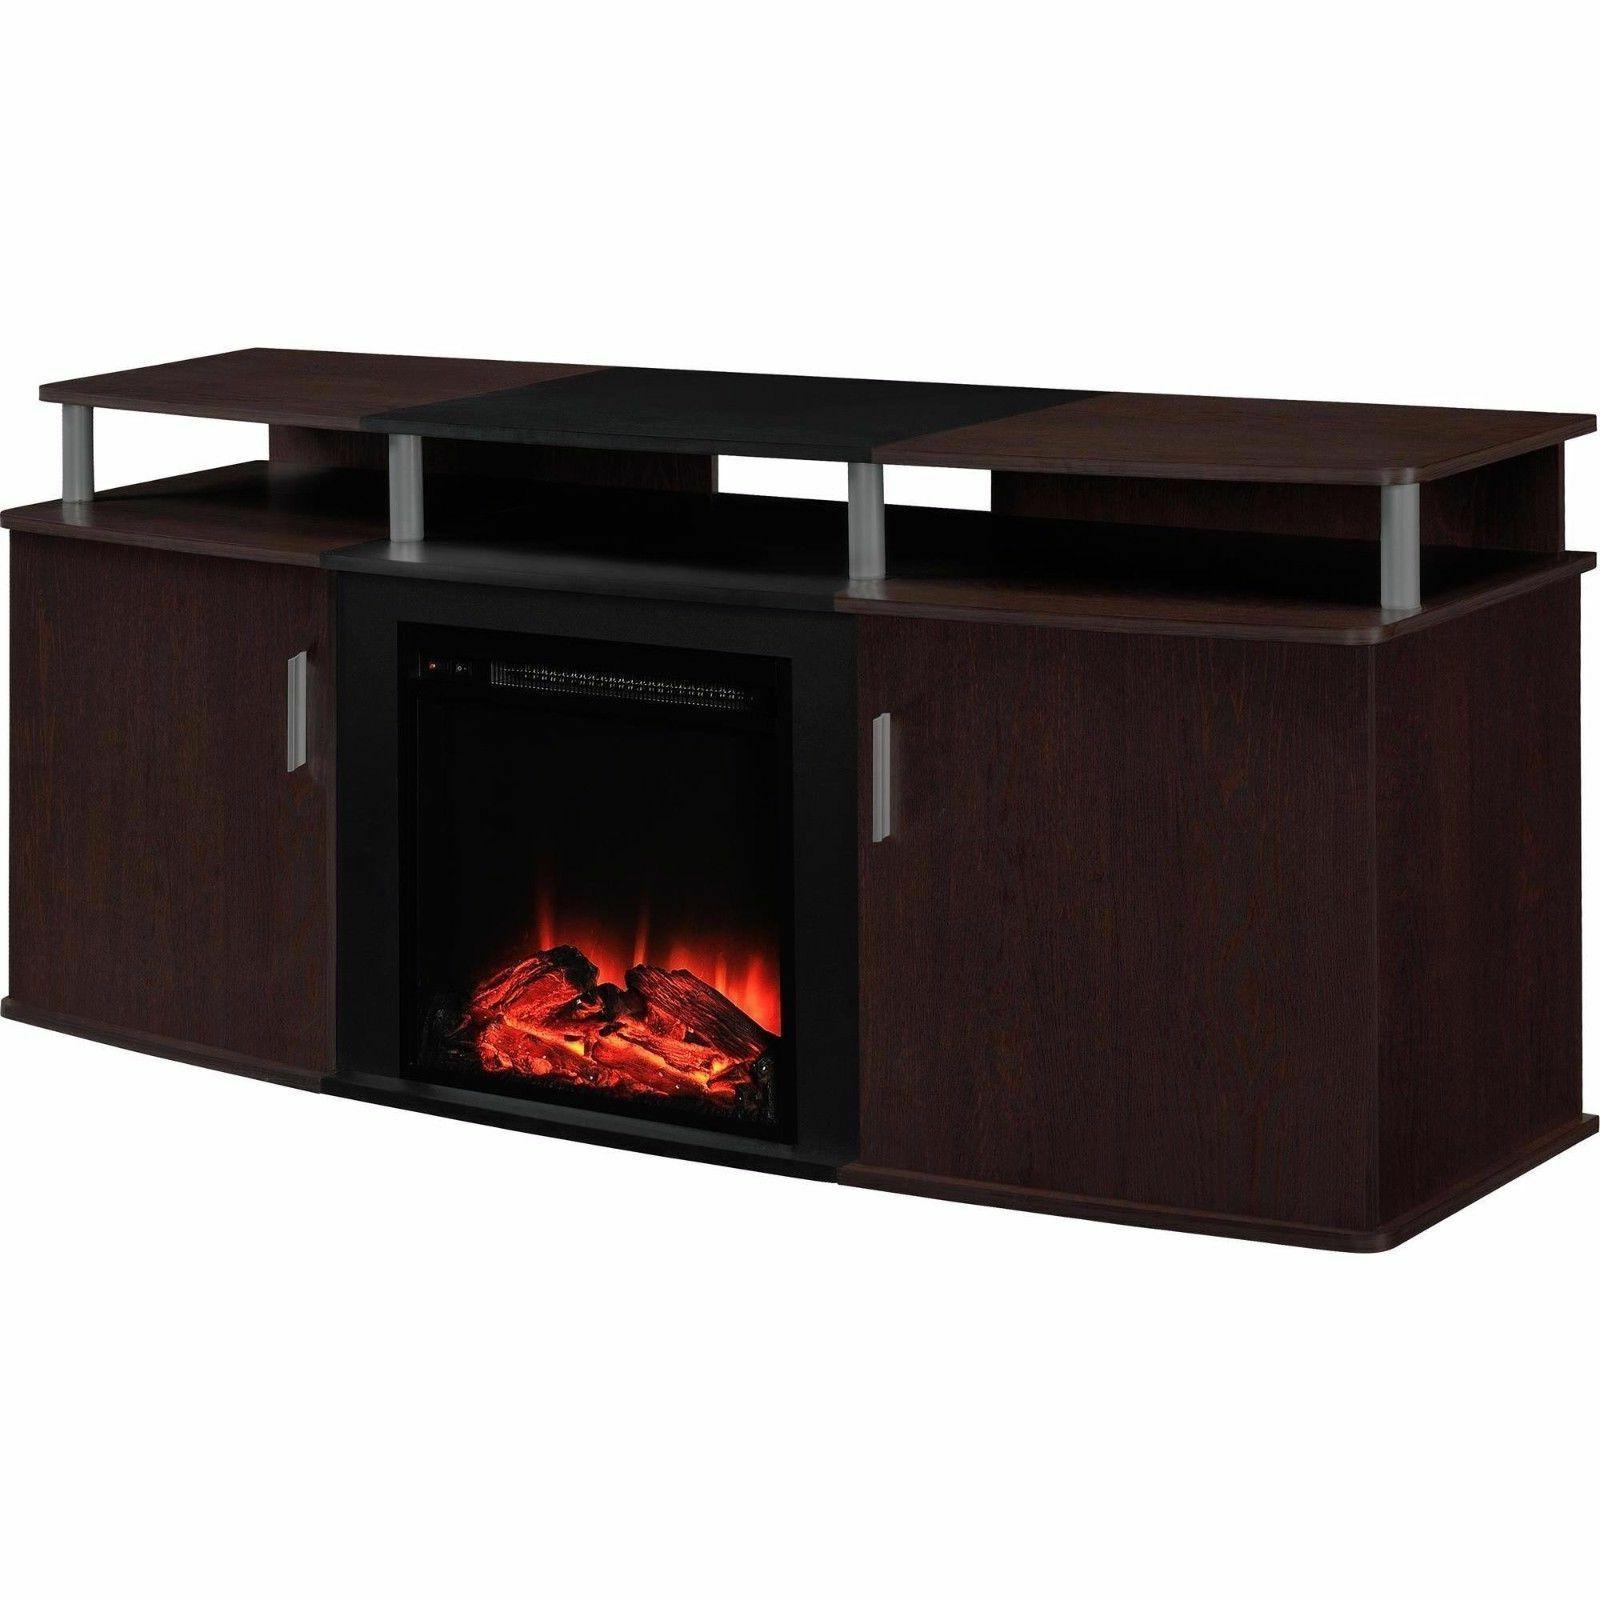 65 Inch TV Stand Fireplace Electric Heater BTU Storage Console